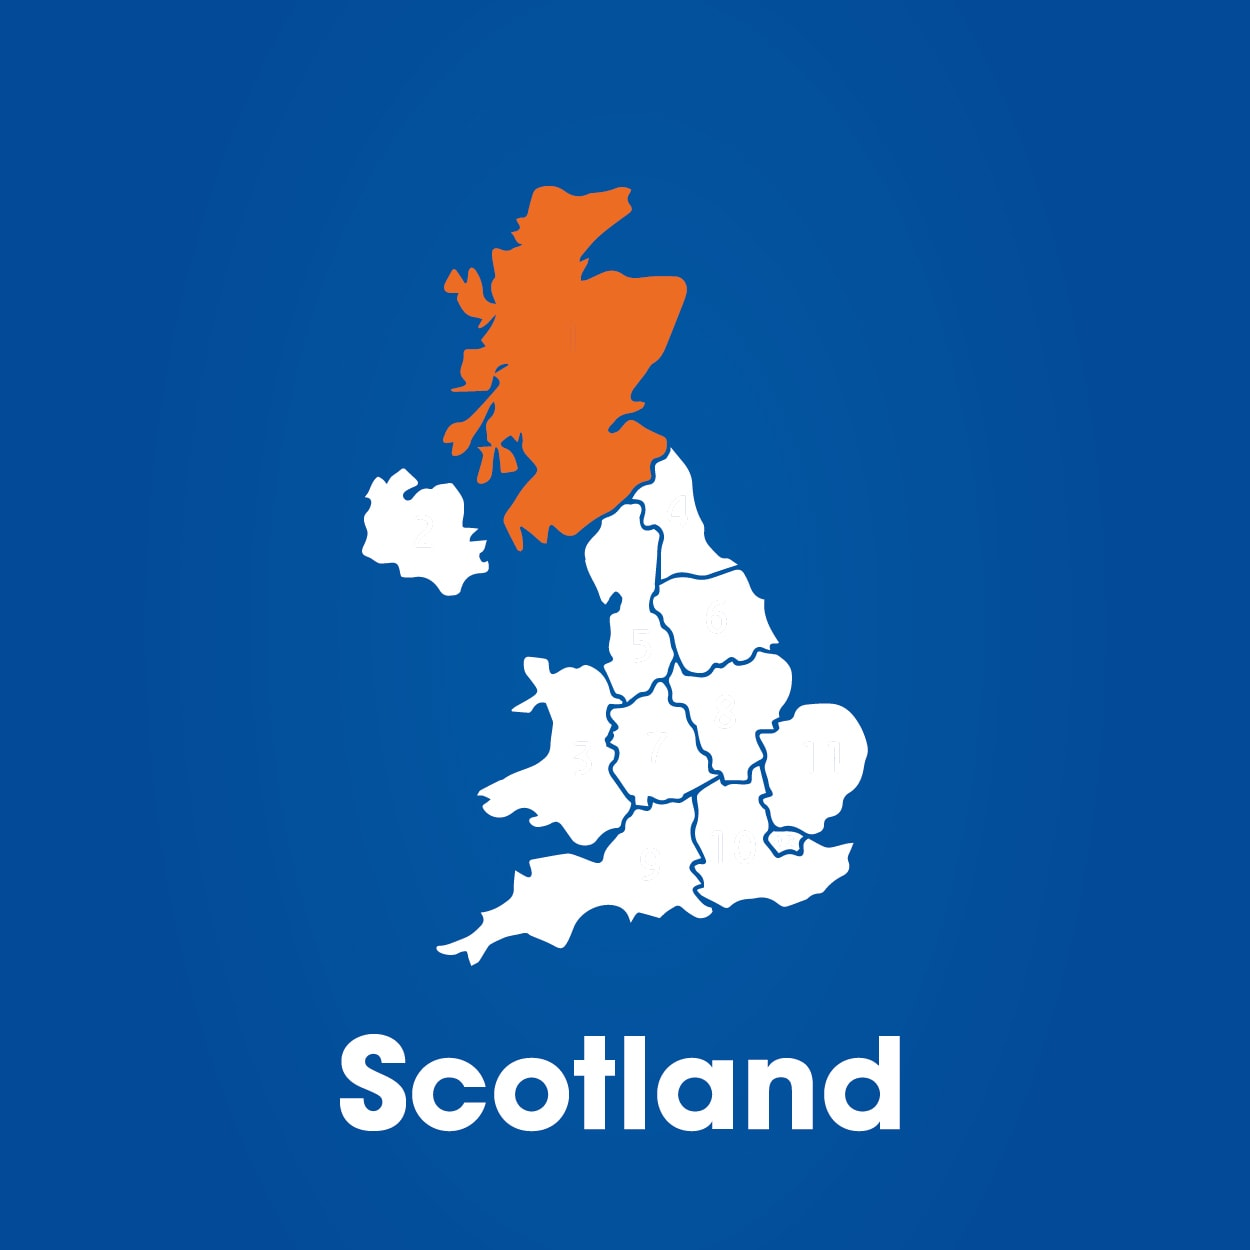 scotland highlighted on map of uk